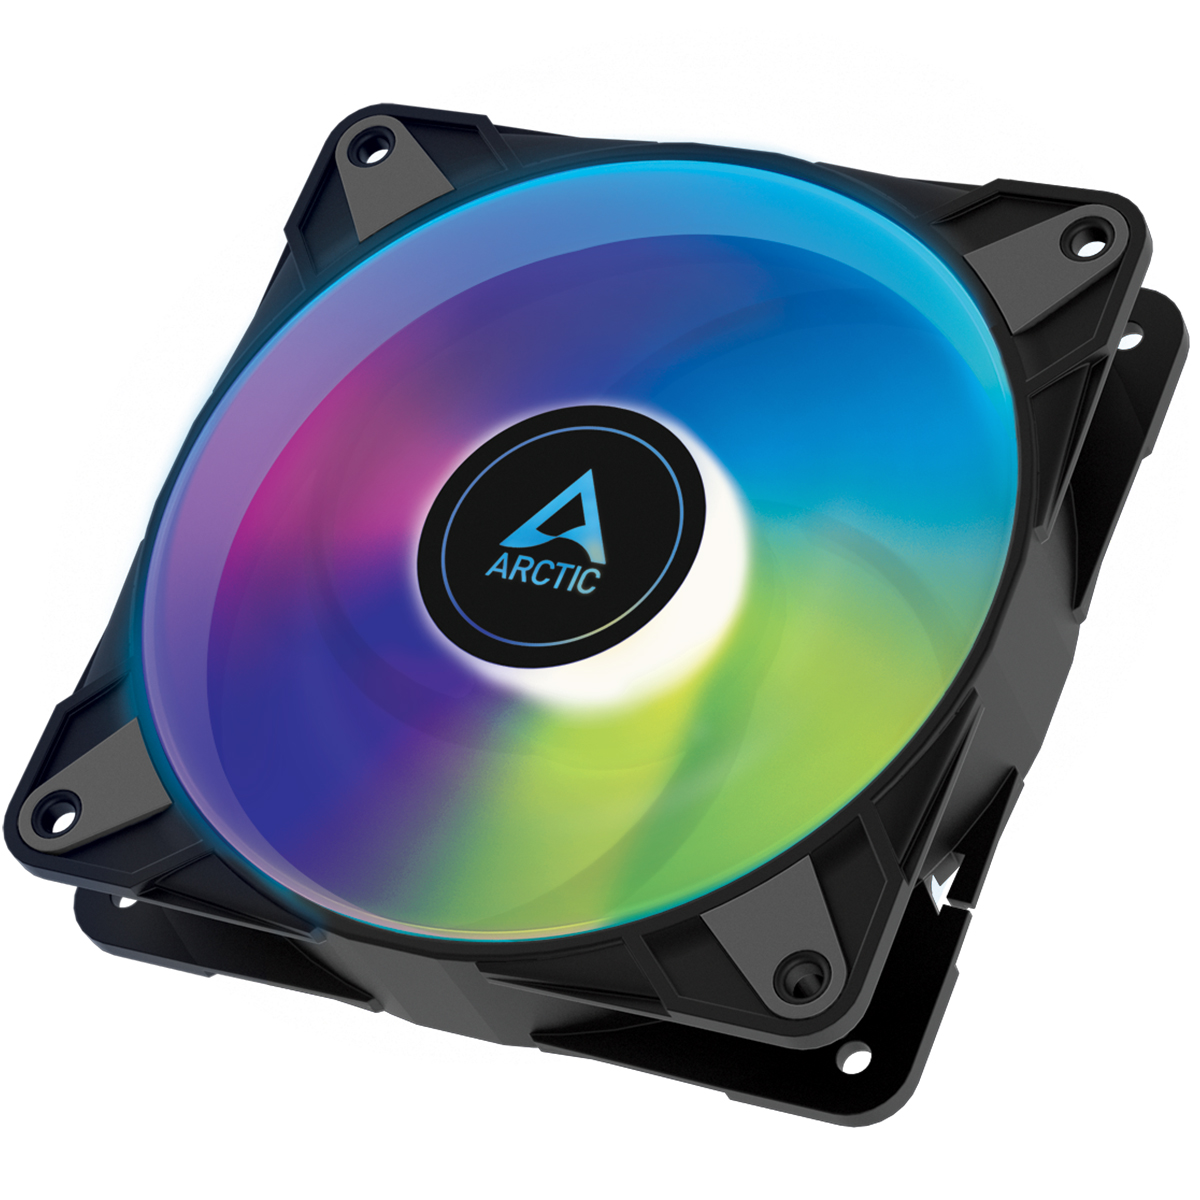 Arctic P12 PWM PST A-RGB 0dB – 120mm Pressure optimized case fan | PWM controlled speed with PST | A - Arctic 2.35.64.00.067